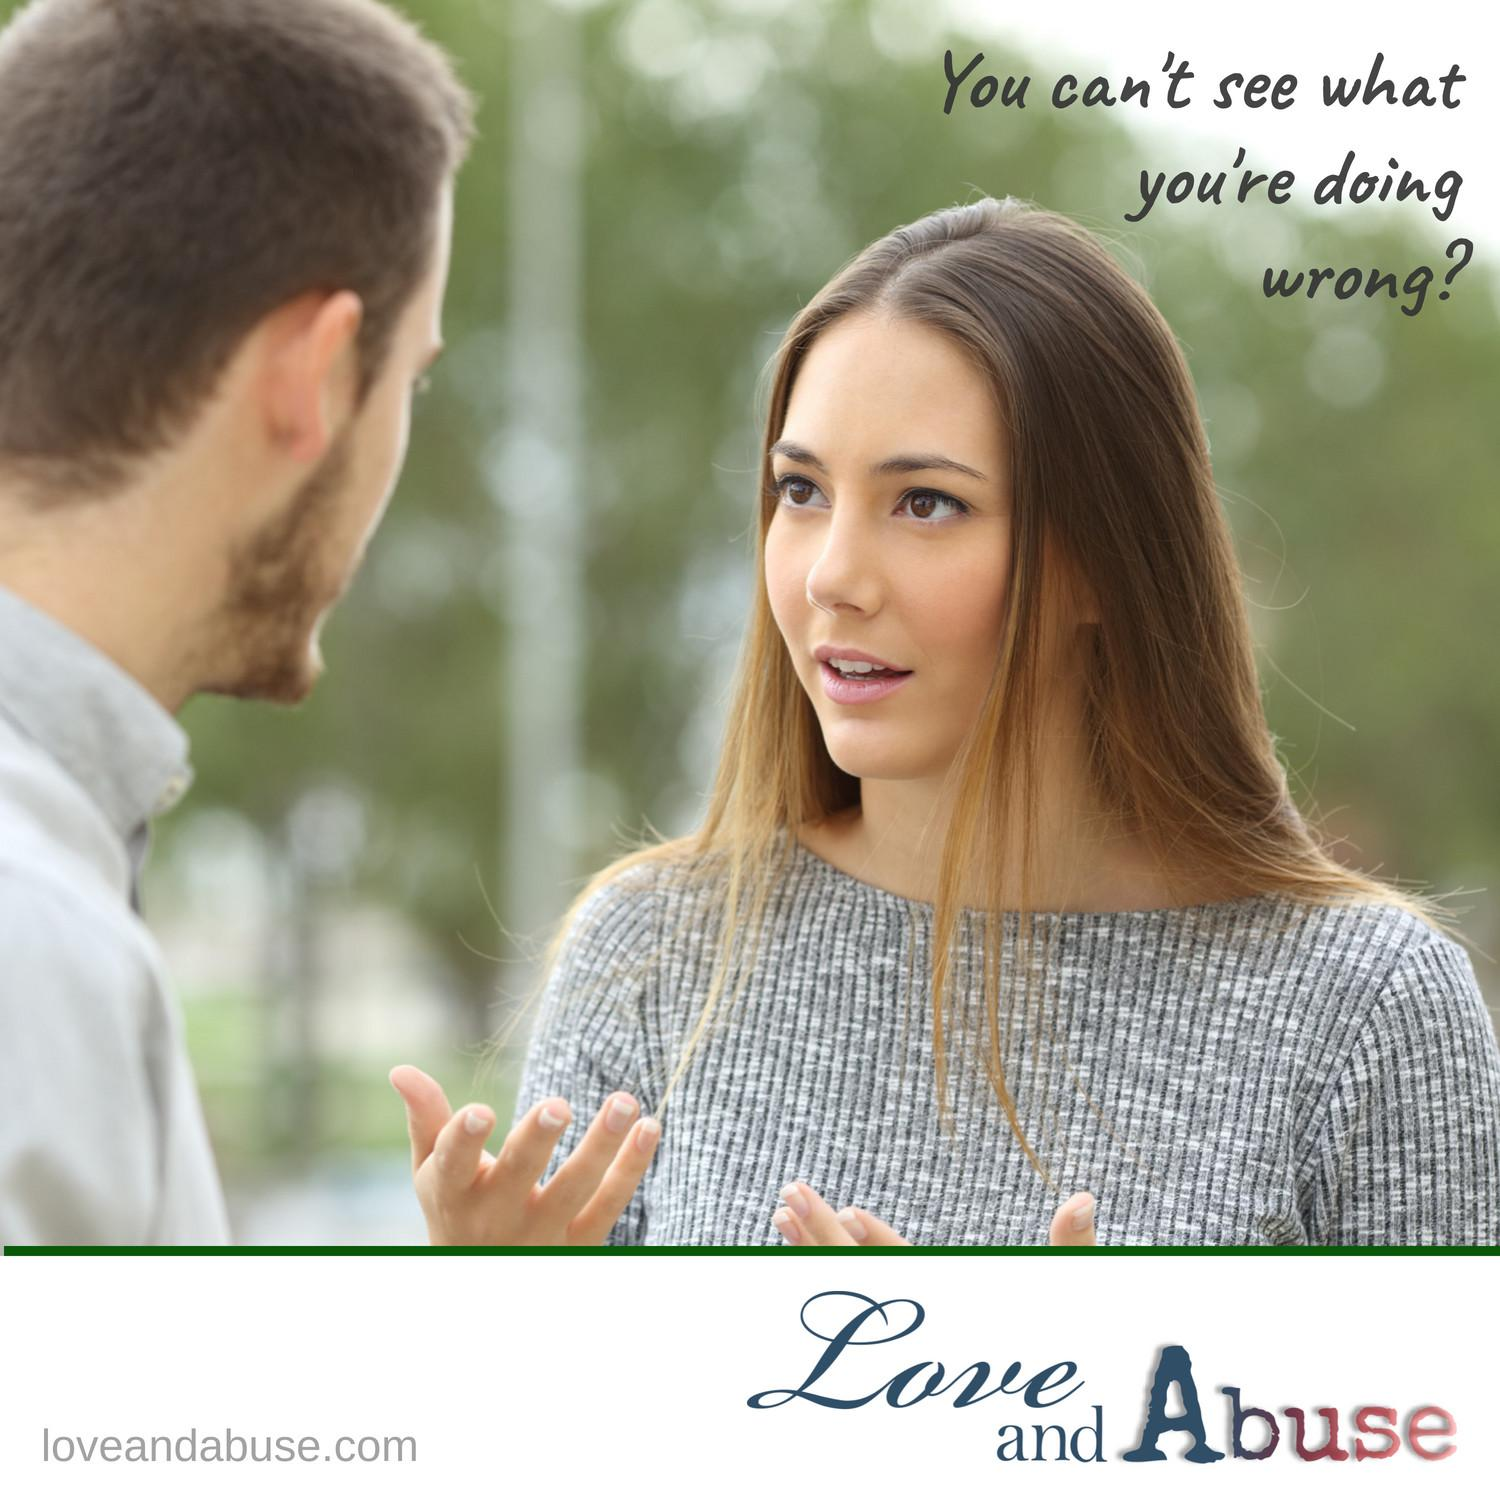 Is there an easy way to help someone understand they are being emotionally abusive?